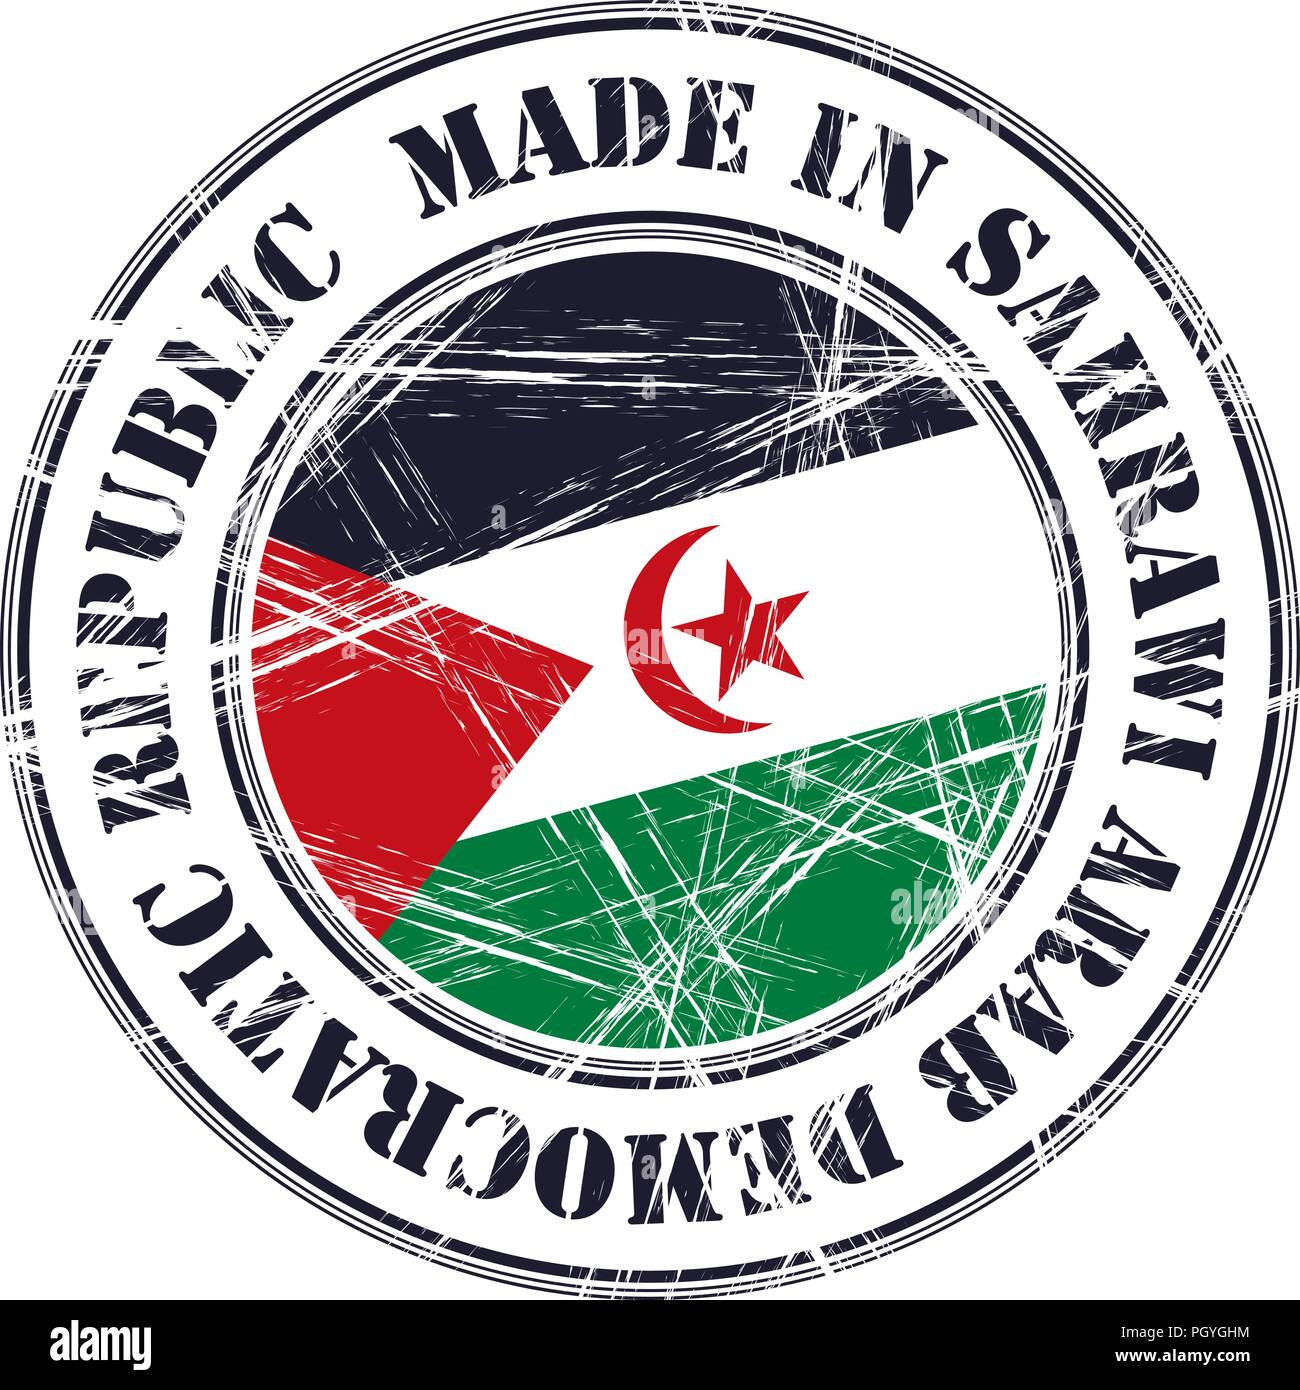 Made in Sahrawi Arab Democratic Republic grunge rubber stamp with flag - Stock Image